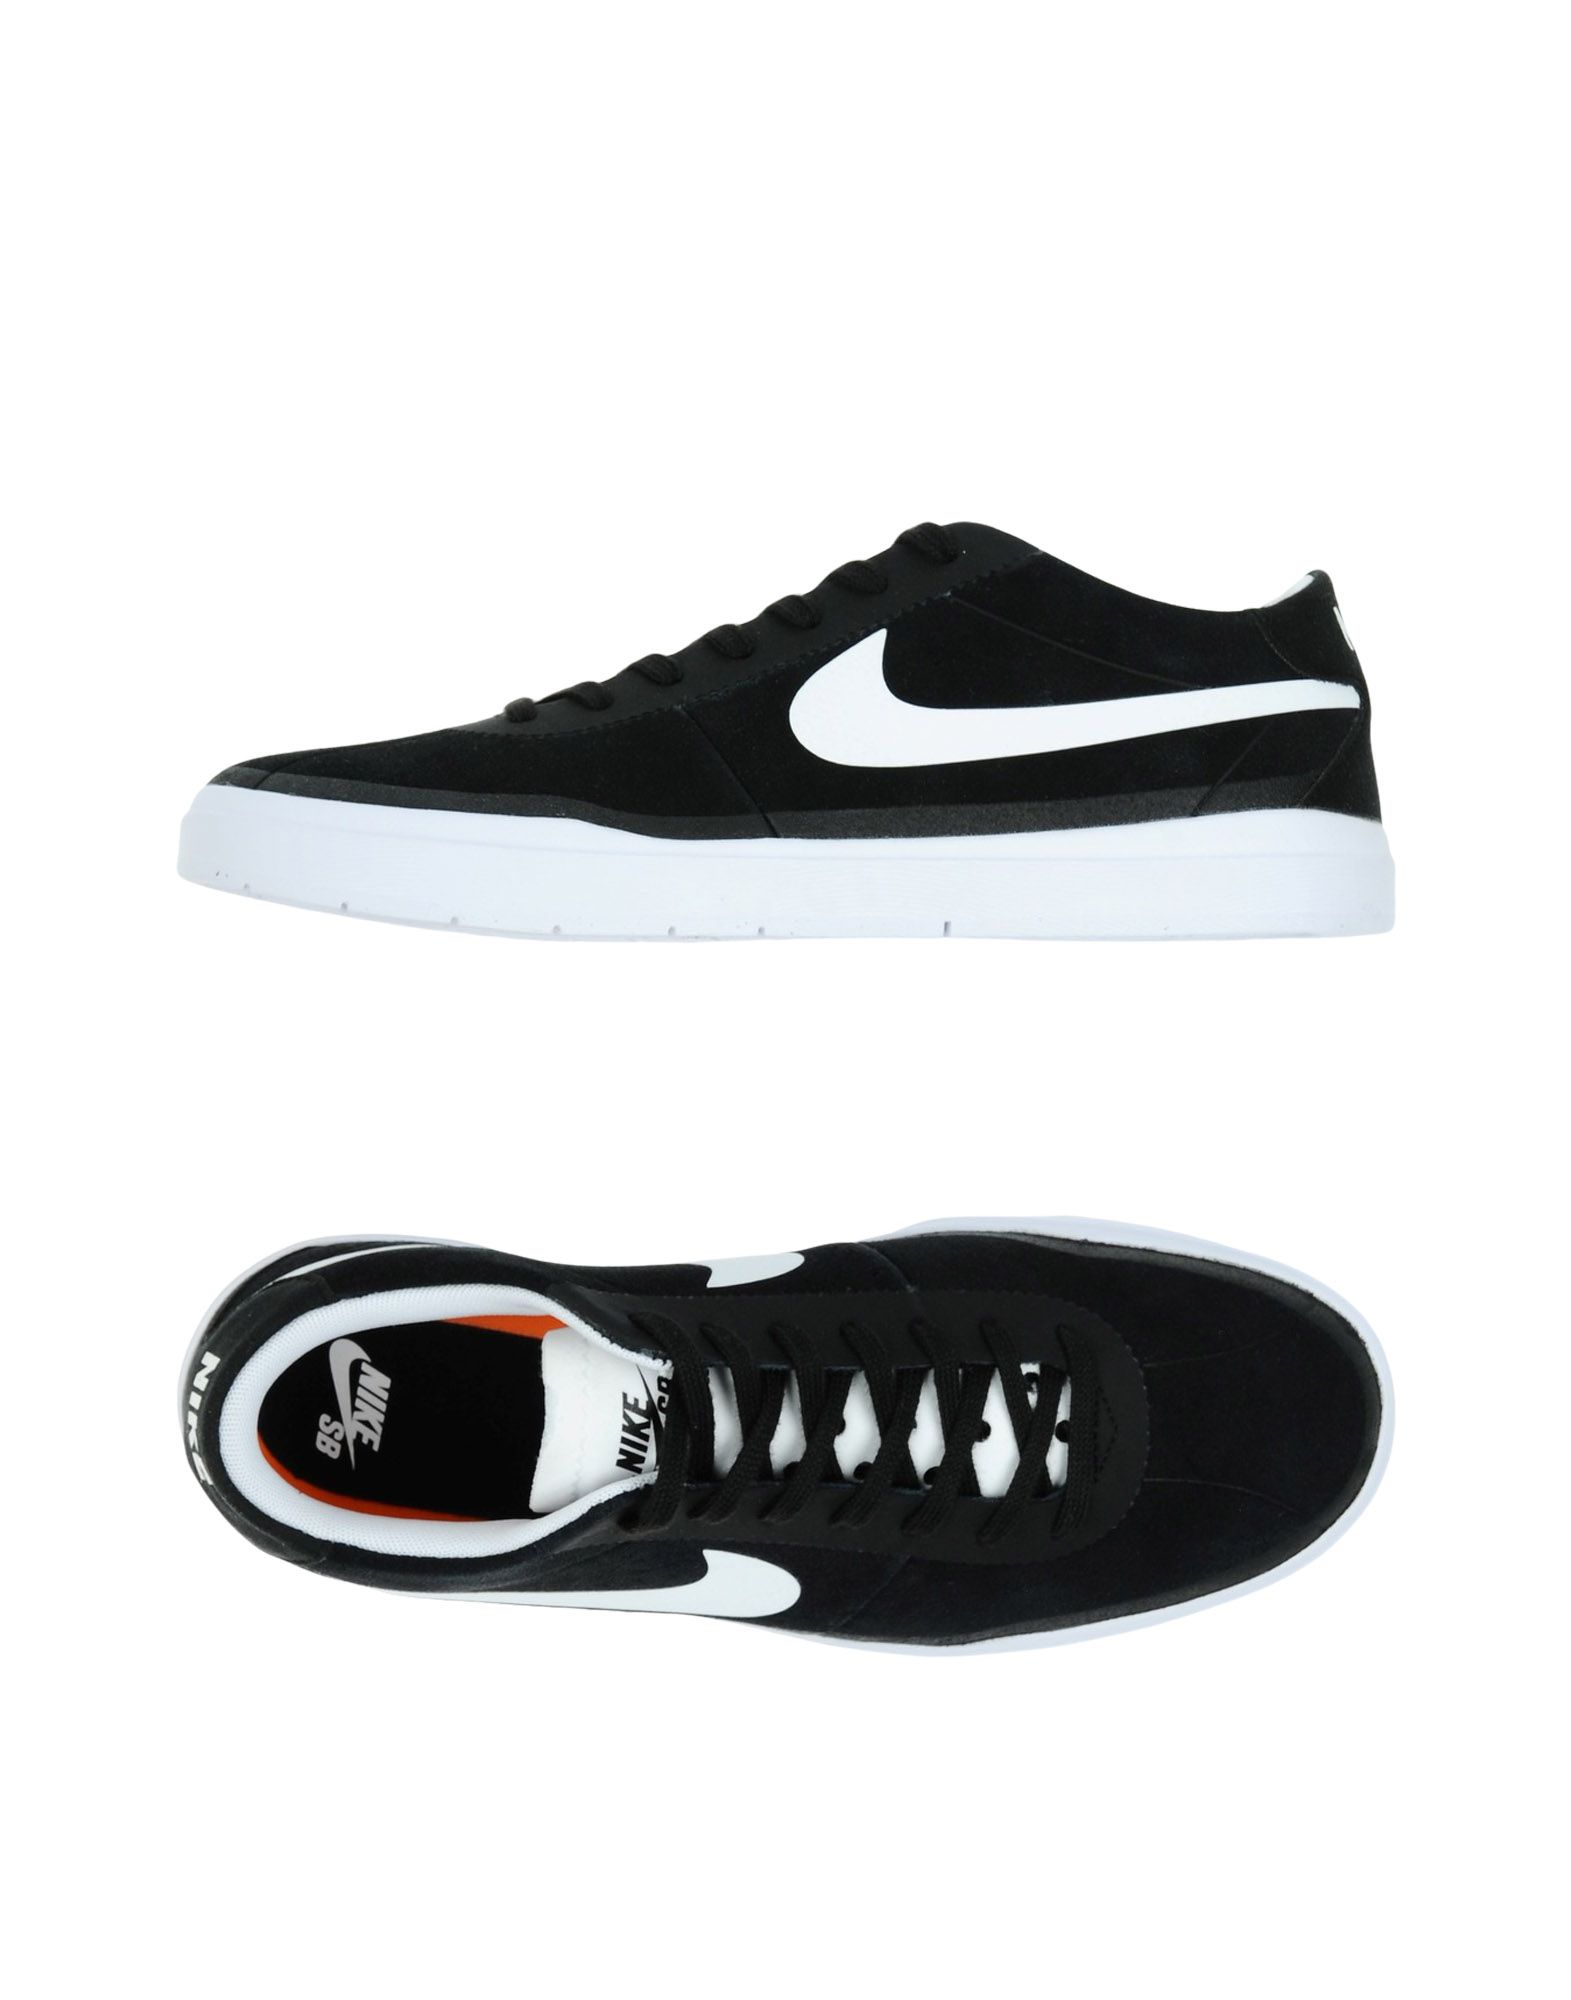 Sneakers Nike Sb Collection Homme - Sneakers Nike Sb Collection  Noir Remise de marque